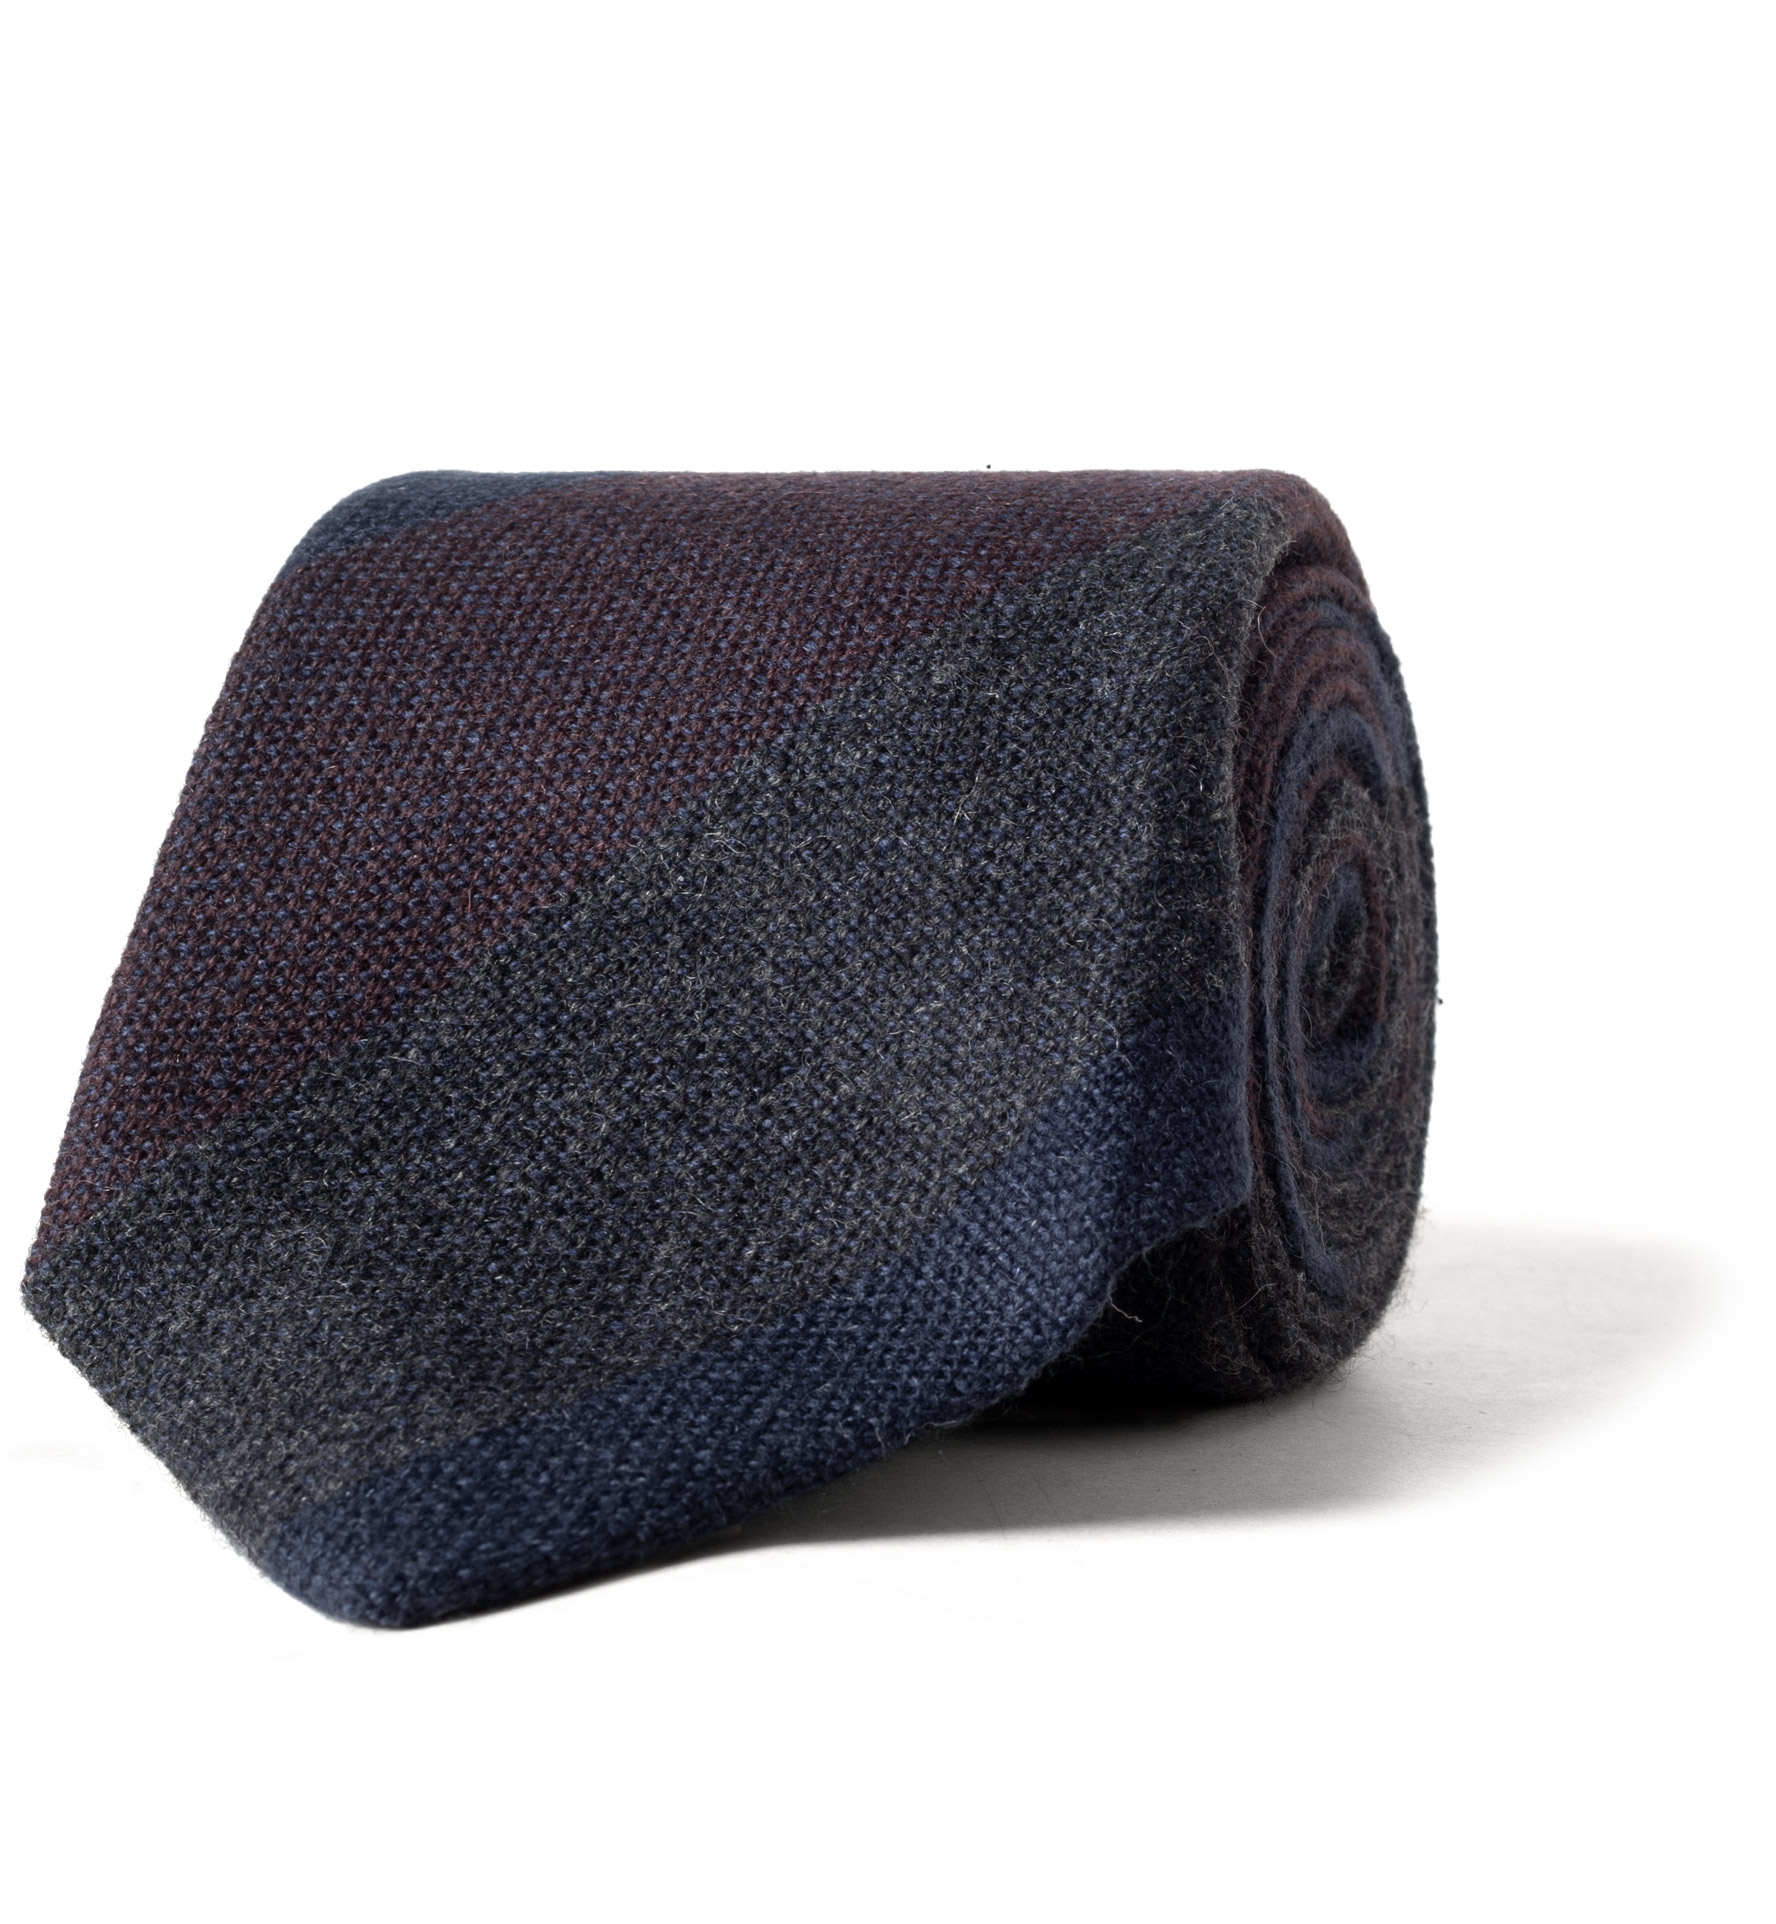 Zoom Image of Navy Charcoal and Burgundy Wide Multi Stripe Cashmere Tie